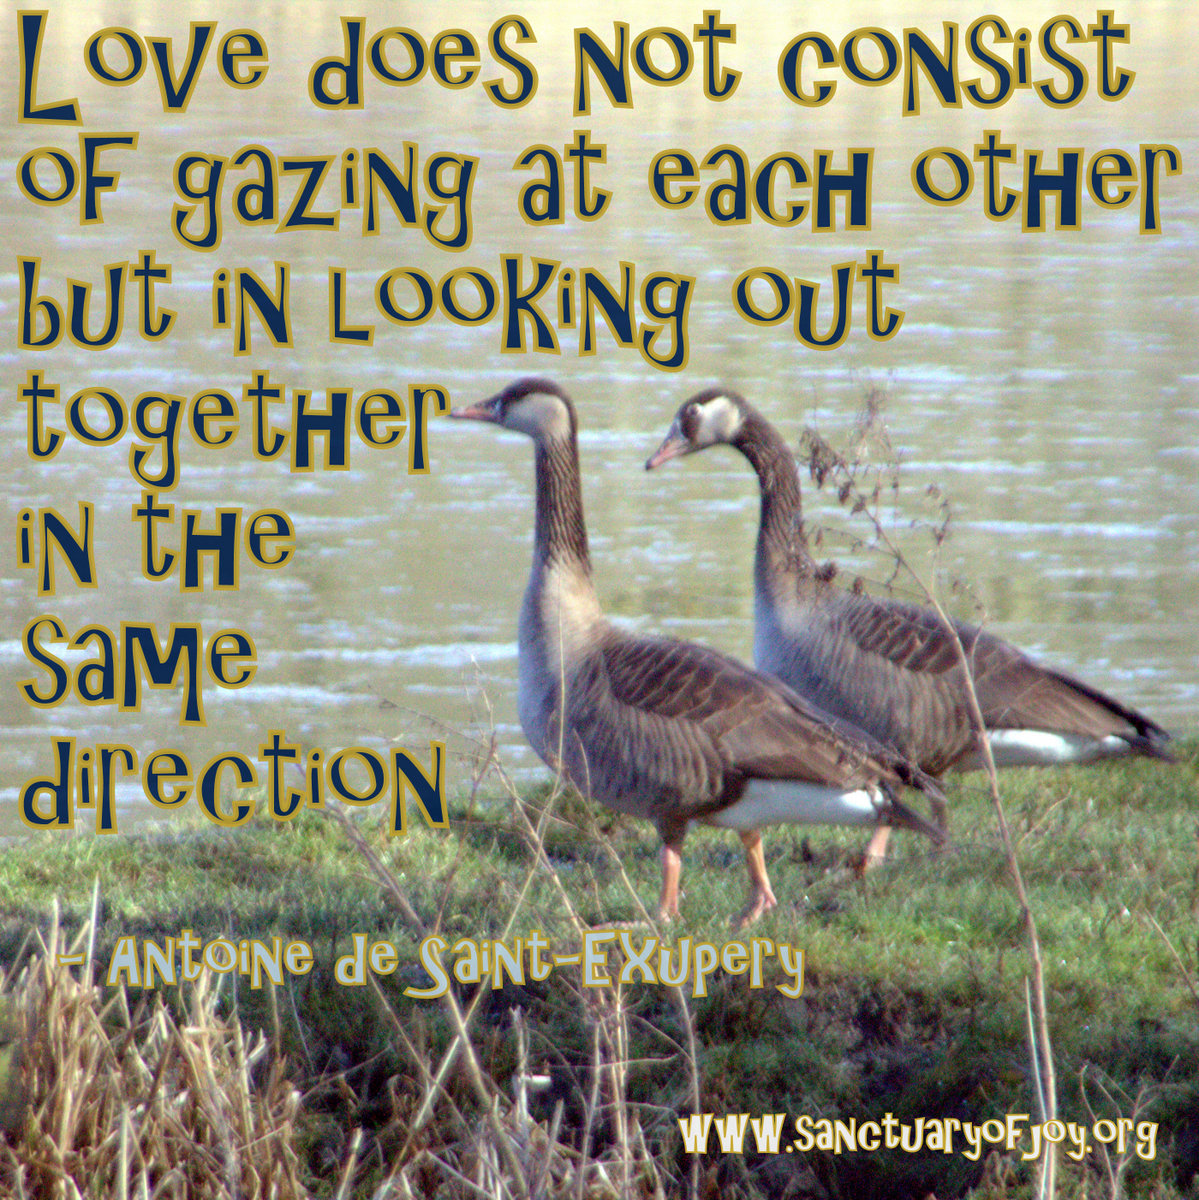 Love does not consist of gazing at each other but in looking out together in the same direction